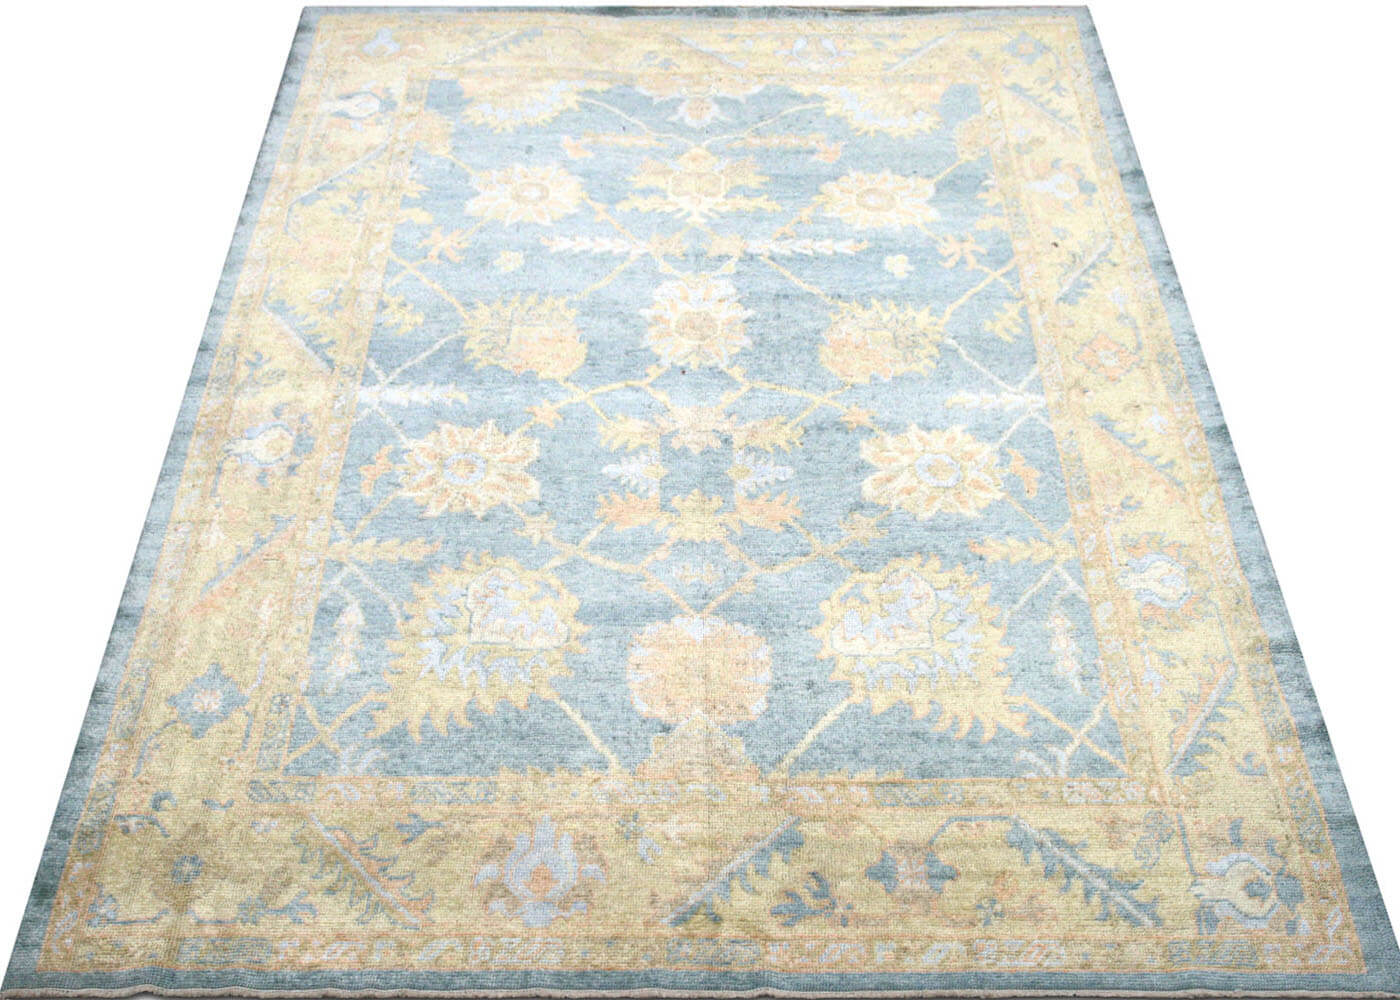 "Recently Woven Turkish Oushak Carpet - 7'8"" x 10'10"""